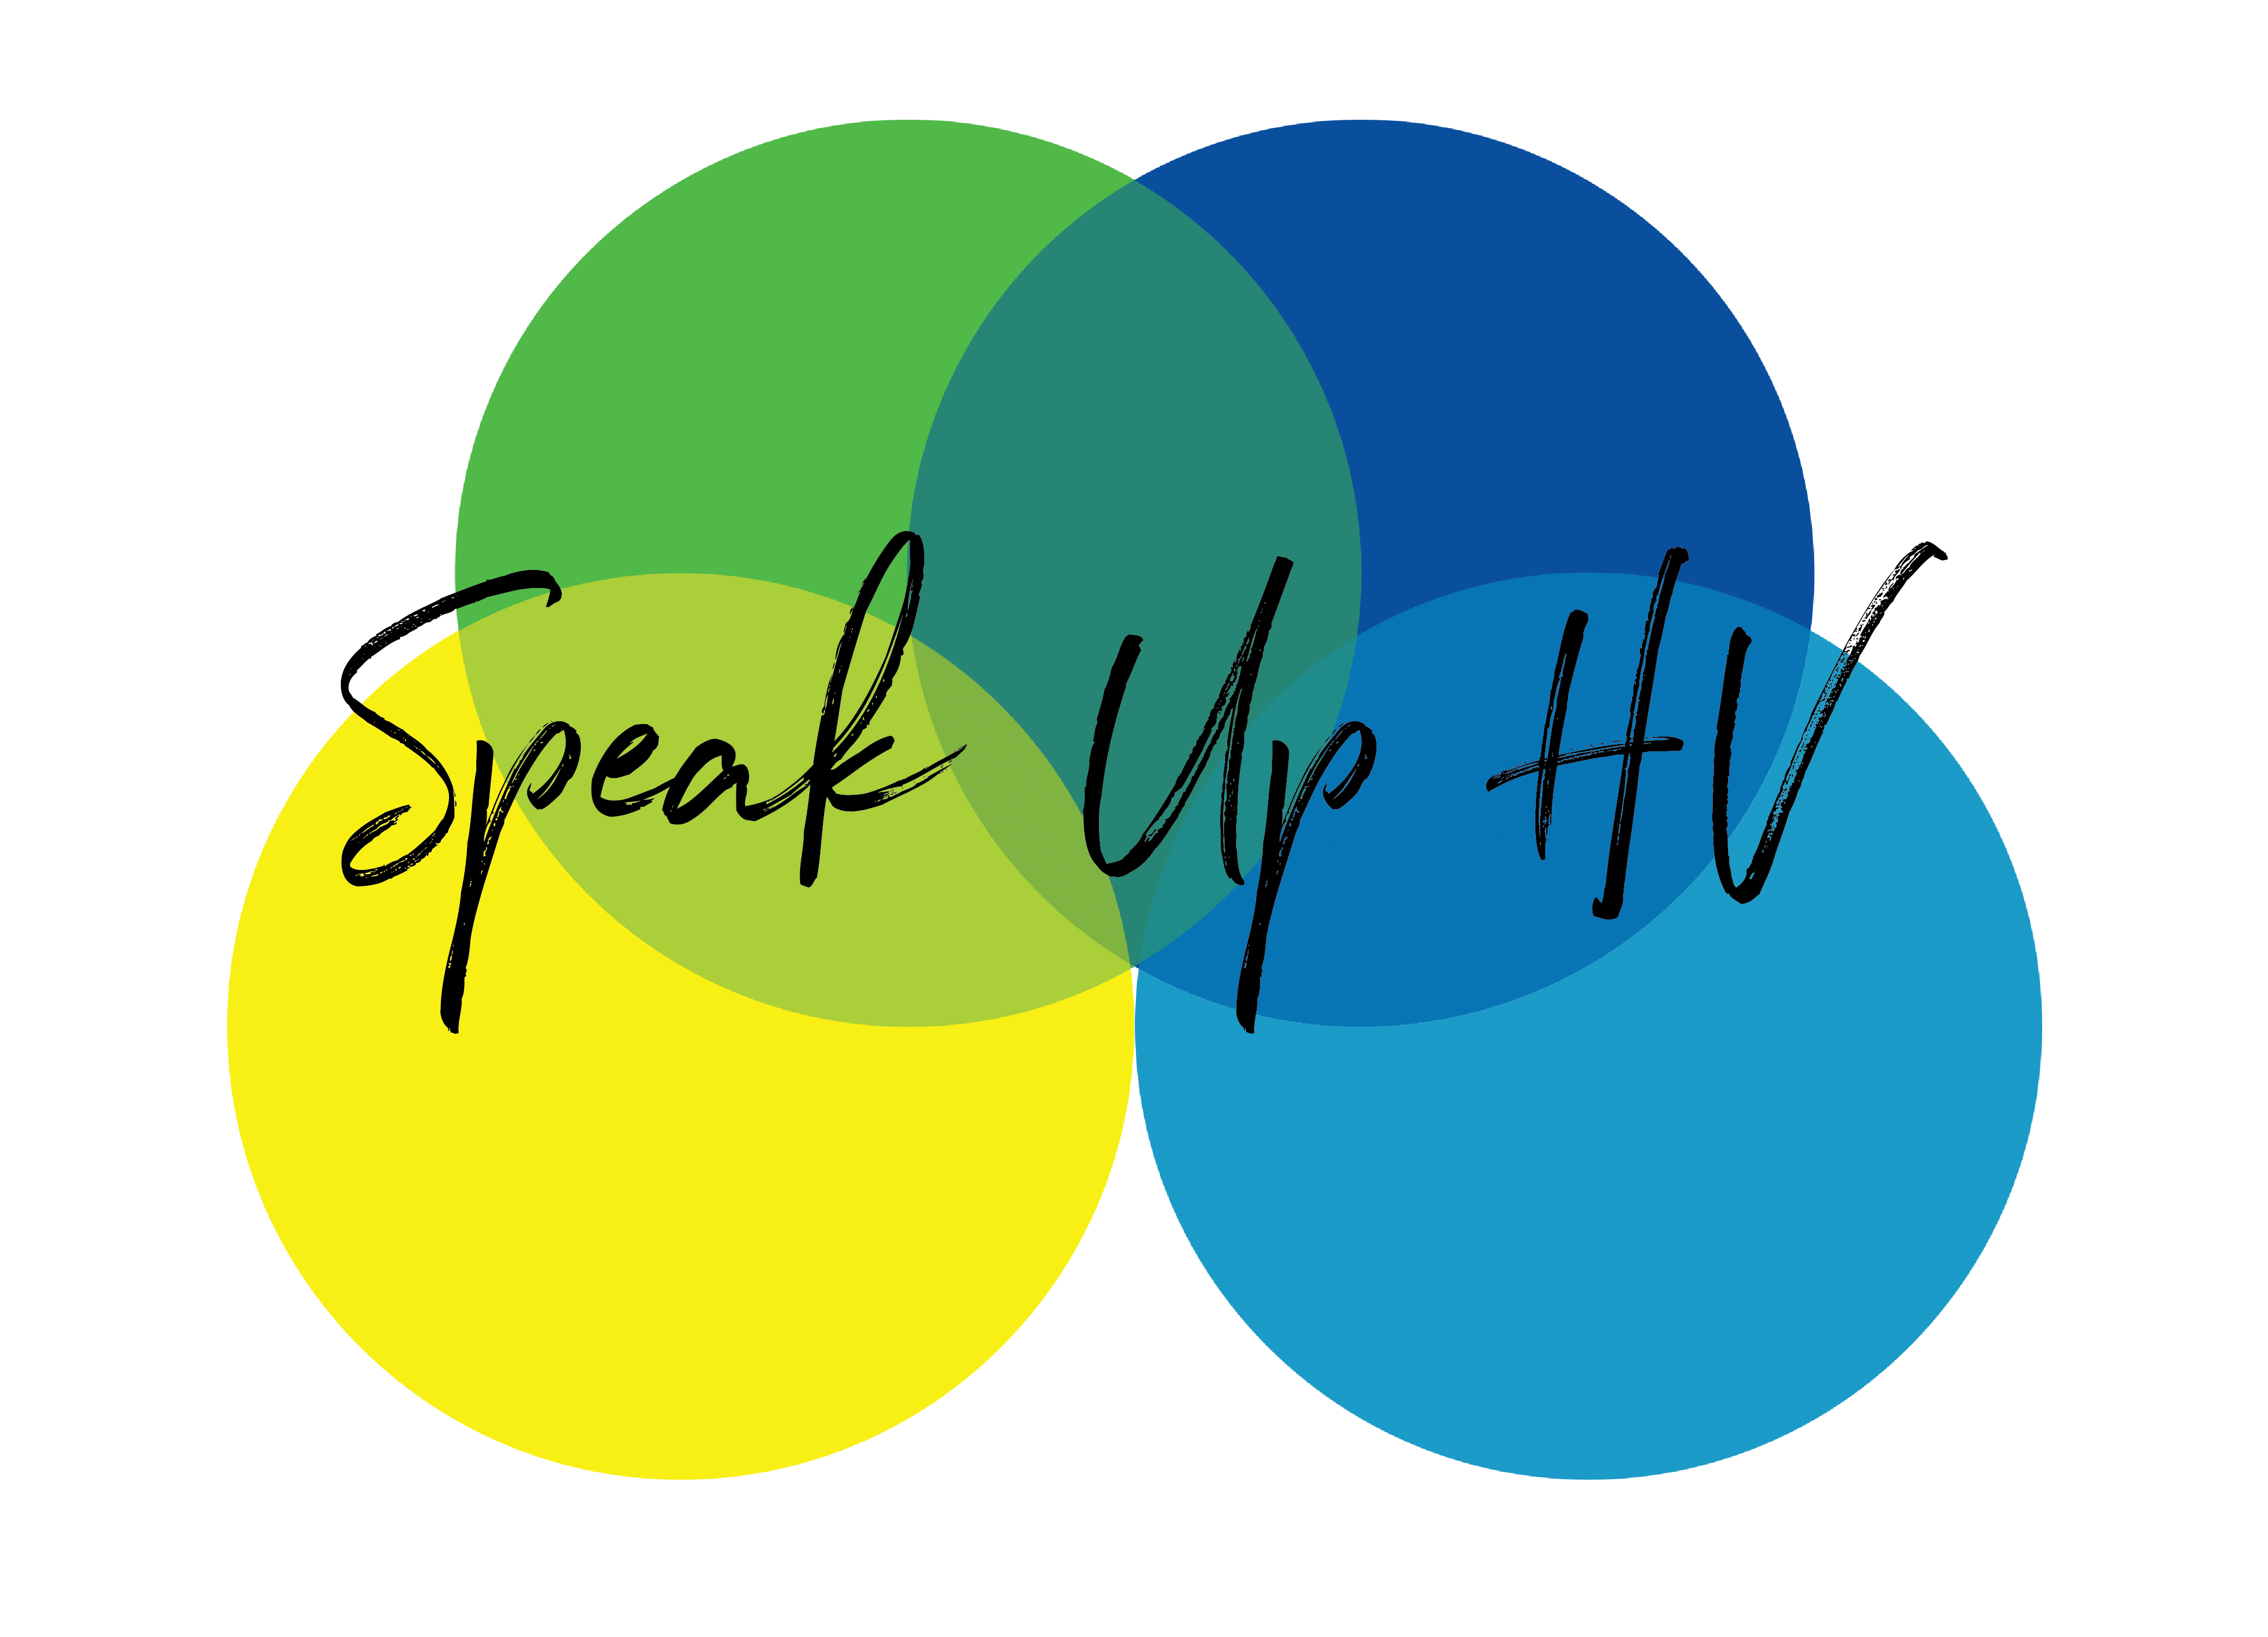 Speak Up Highland Village